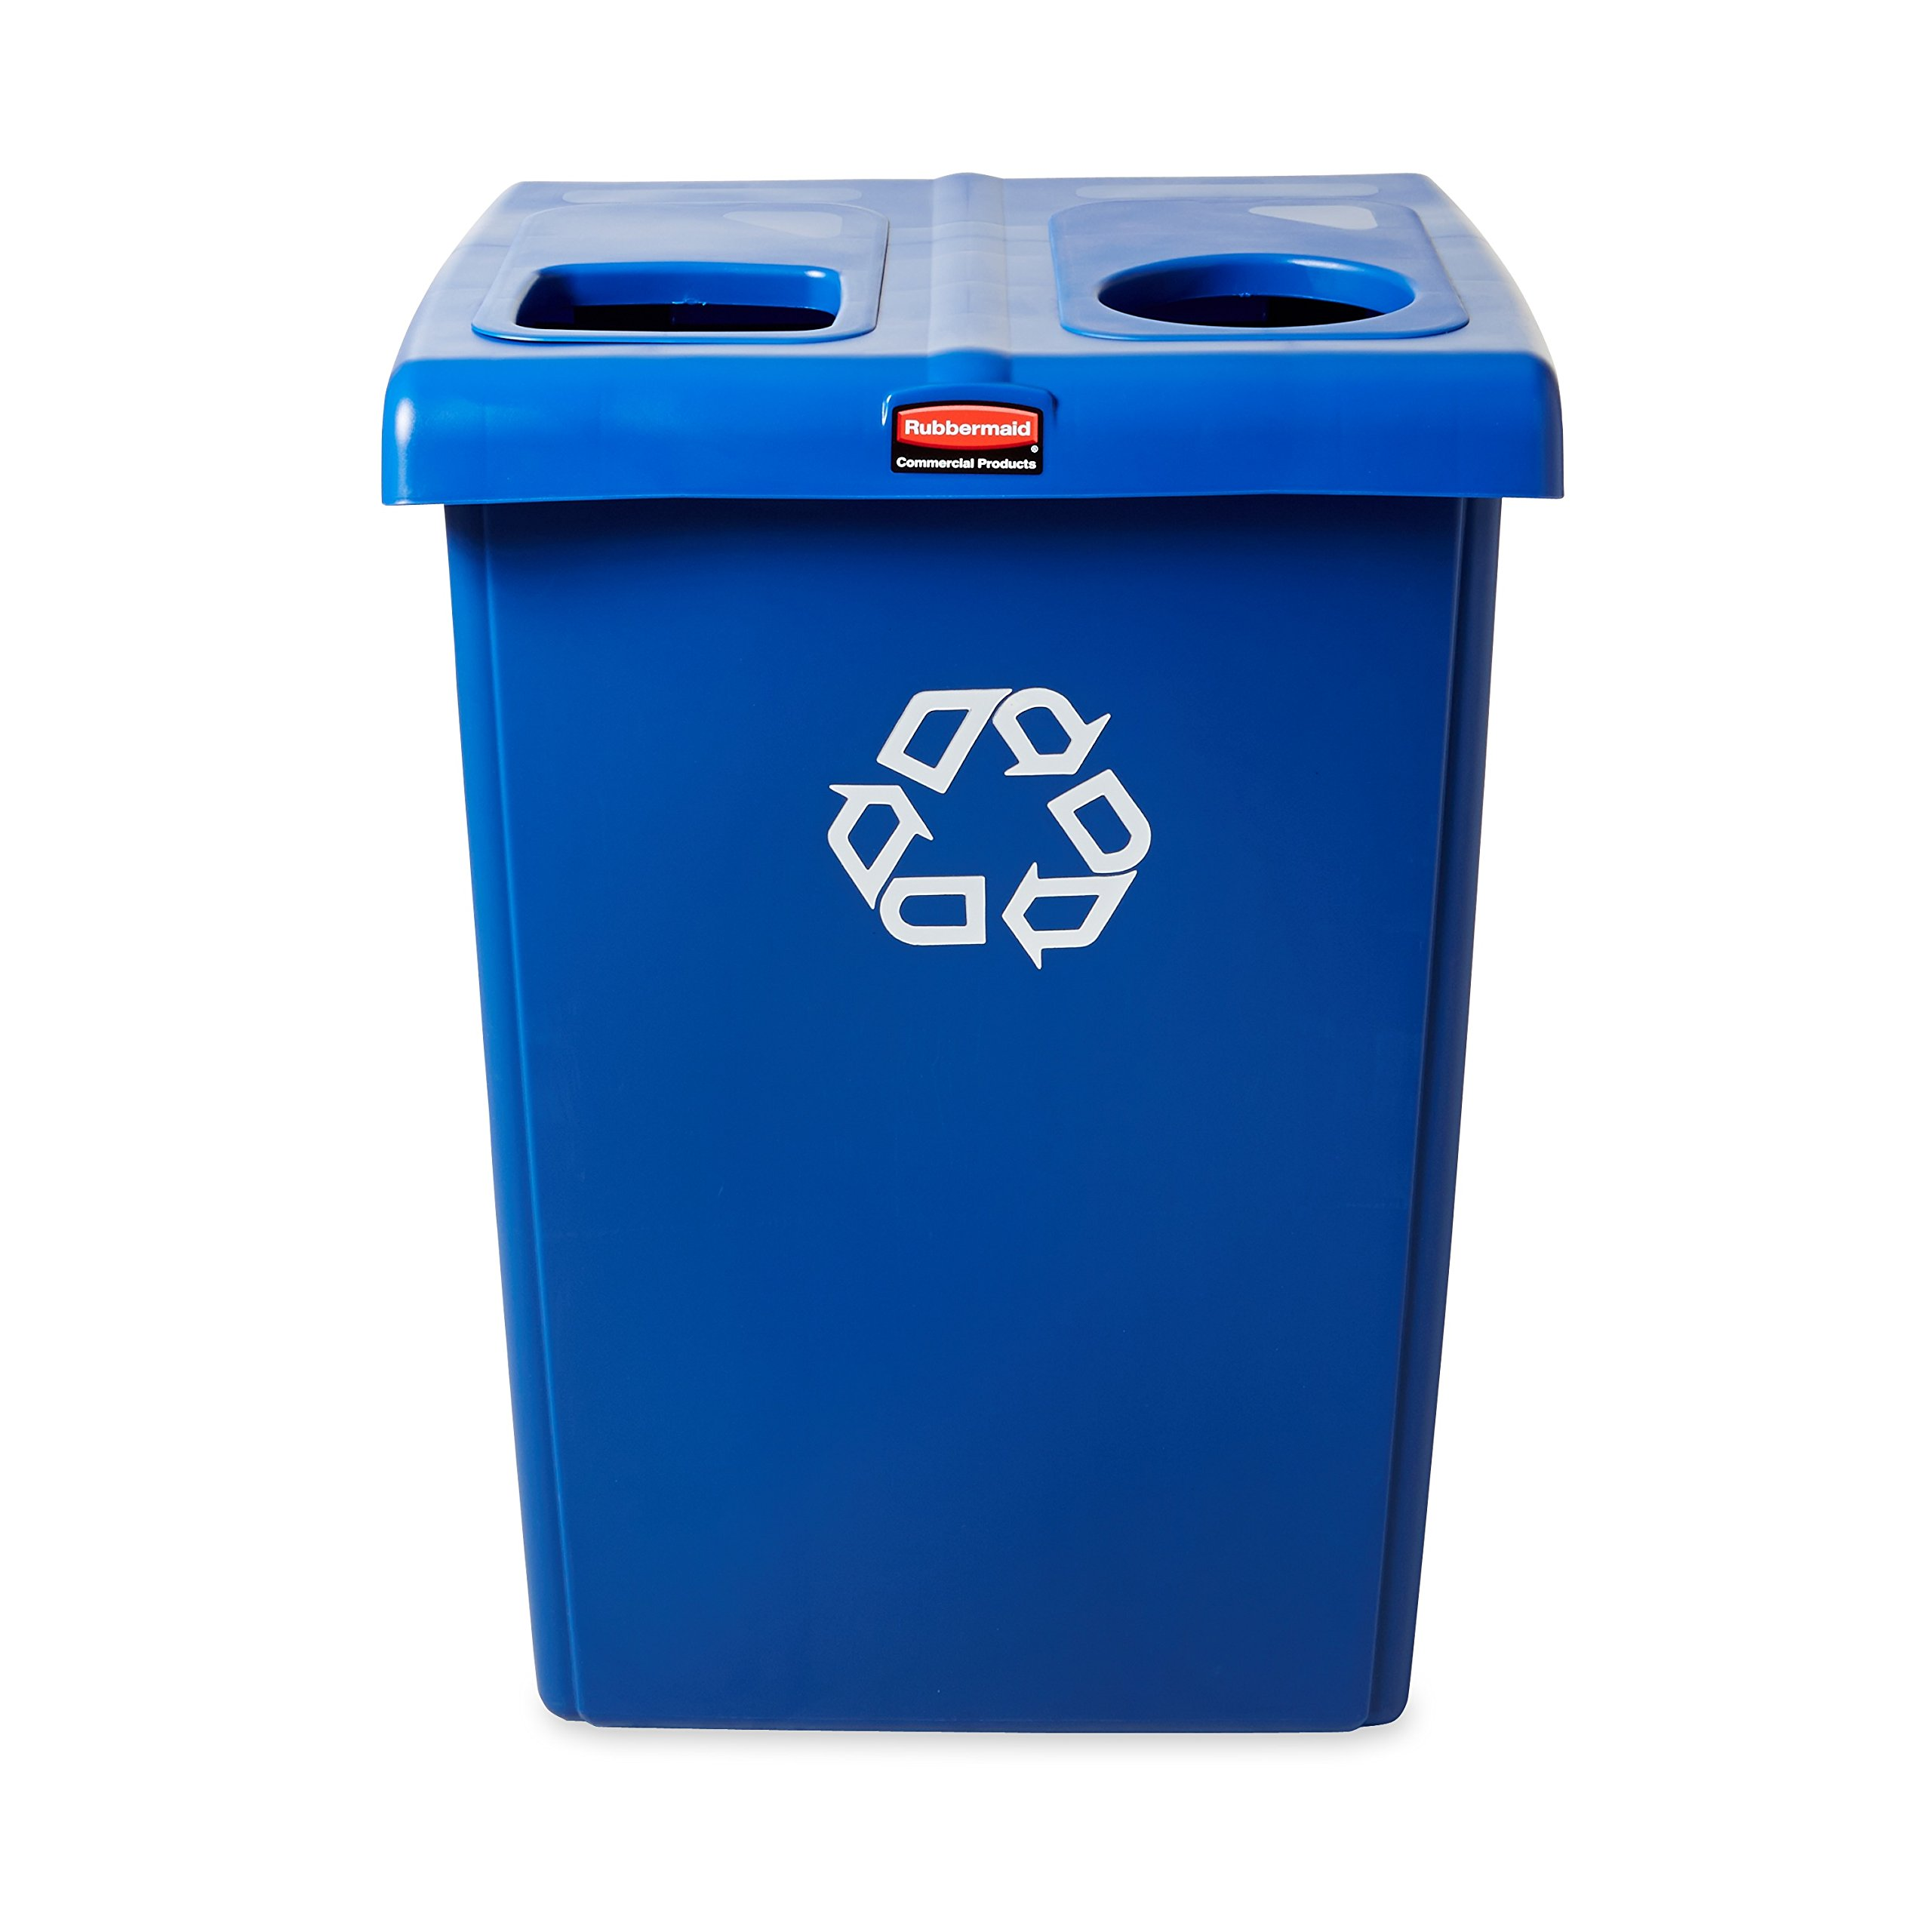 Rubbermaid Commercial 1792339 Glutton Recycling Station, 2-Stream, 46-Gallon, Blue by Rubbermaid Commercial Products (Image #3)